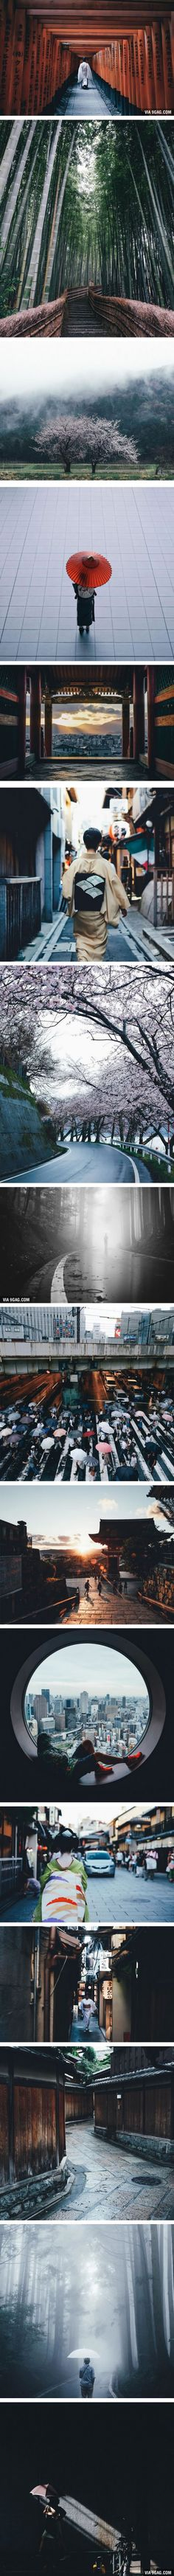 The Beauty Of Life In Japan (By Photographer Takashi Yasui)